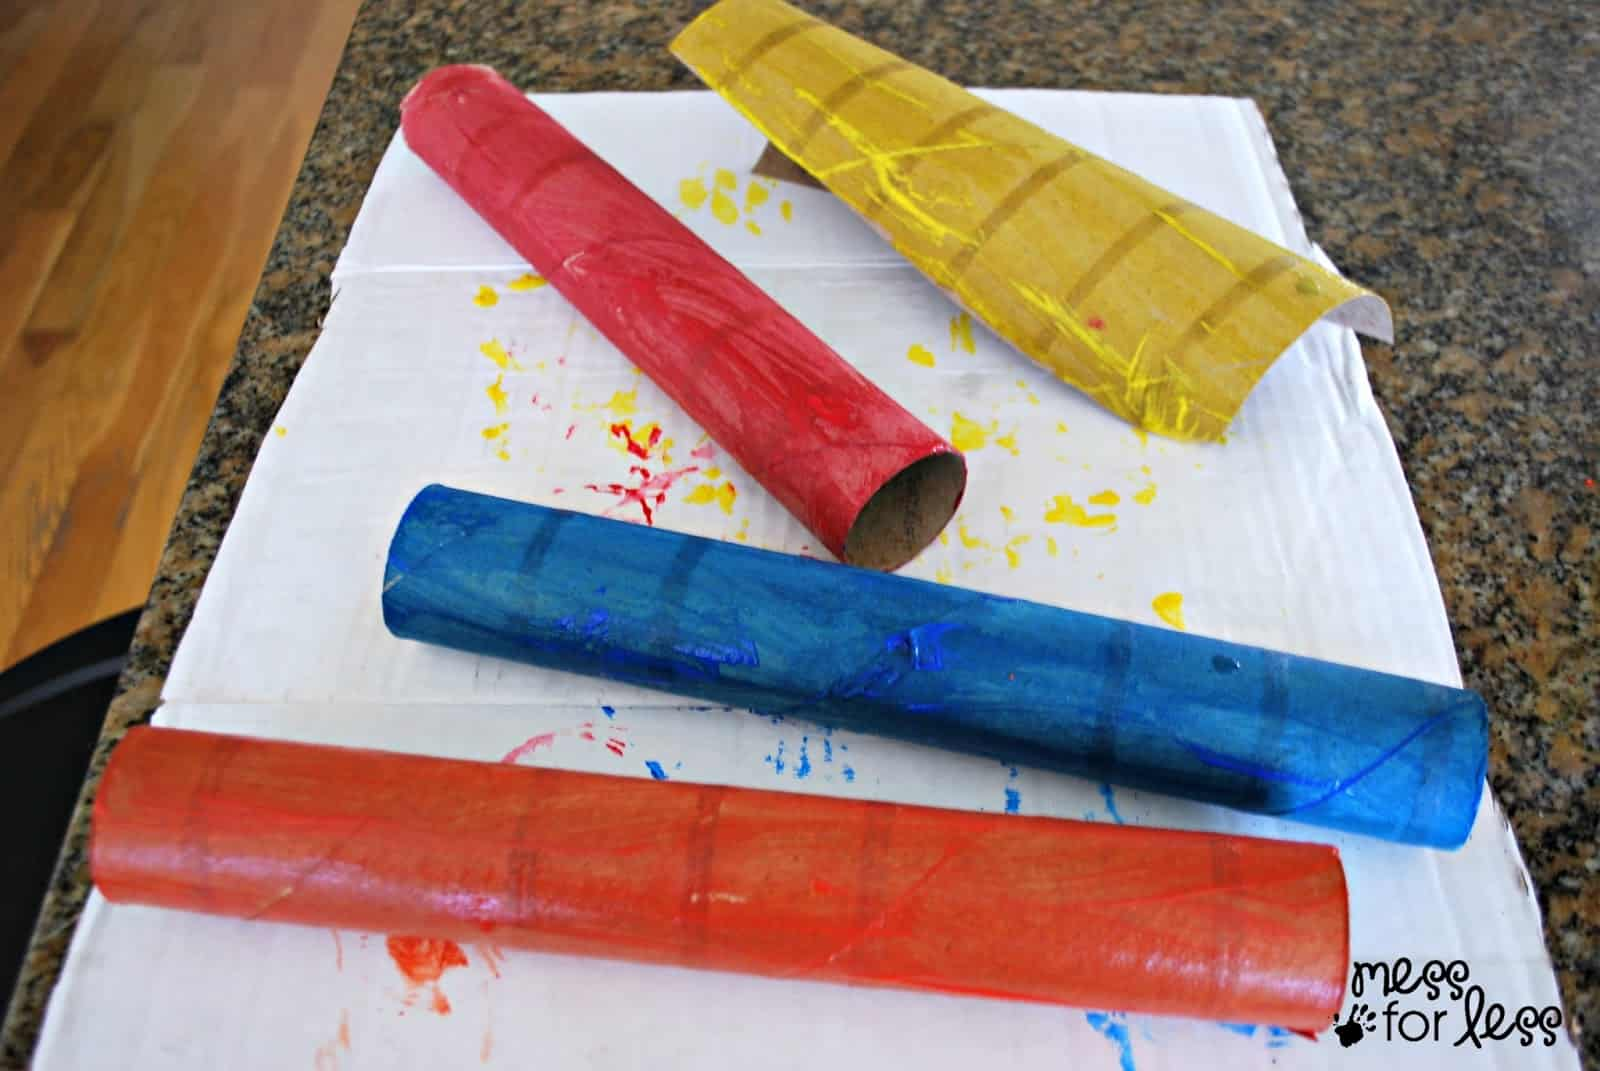 painted paper towel tubes